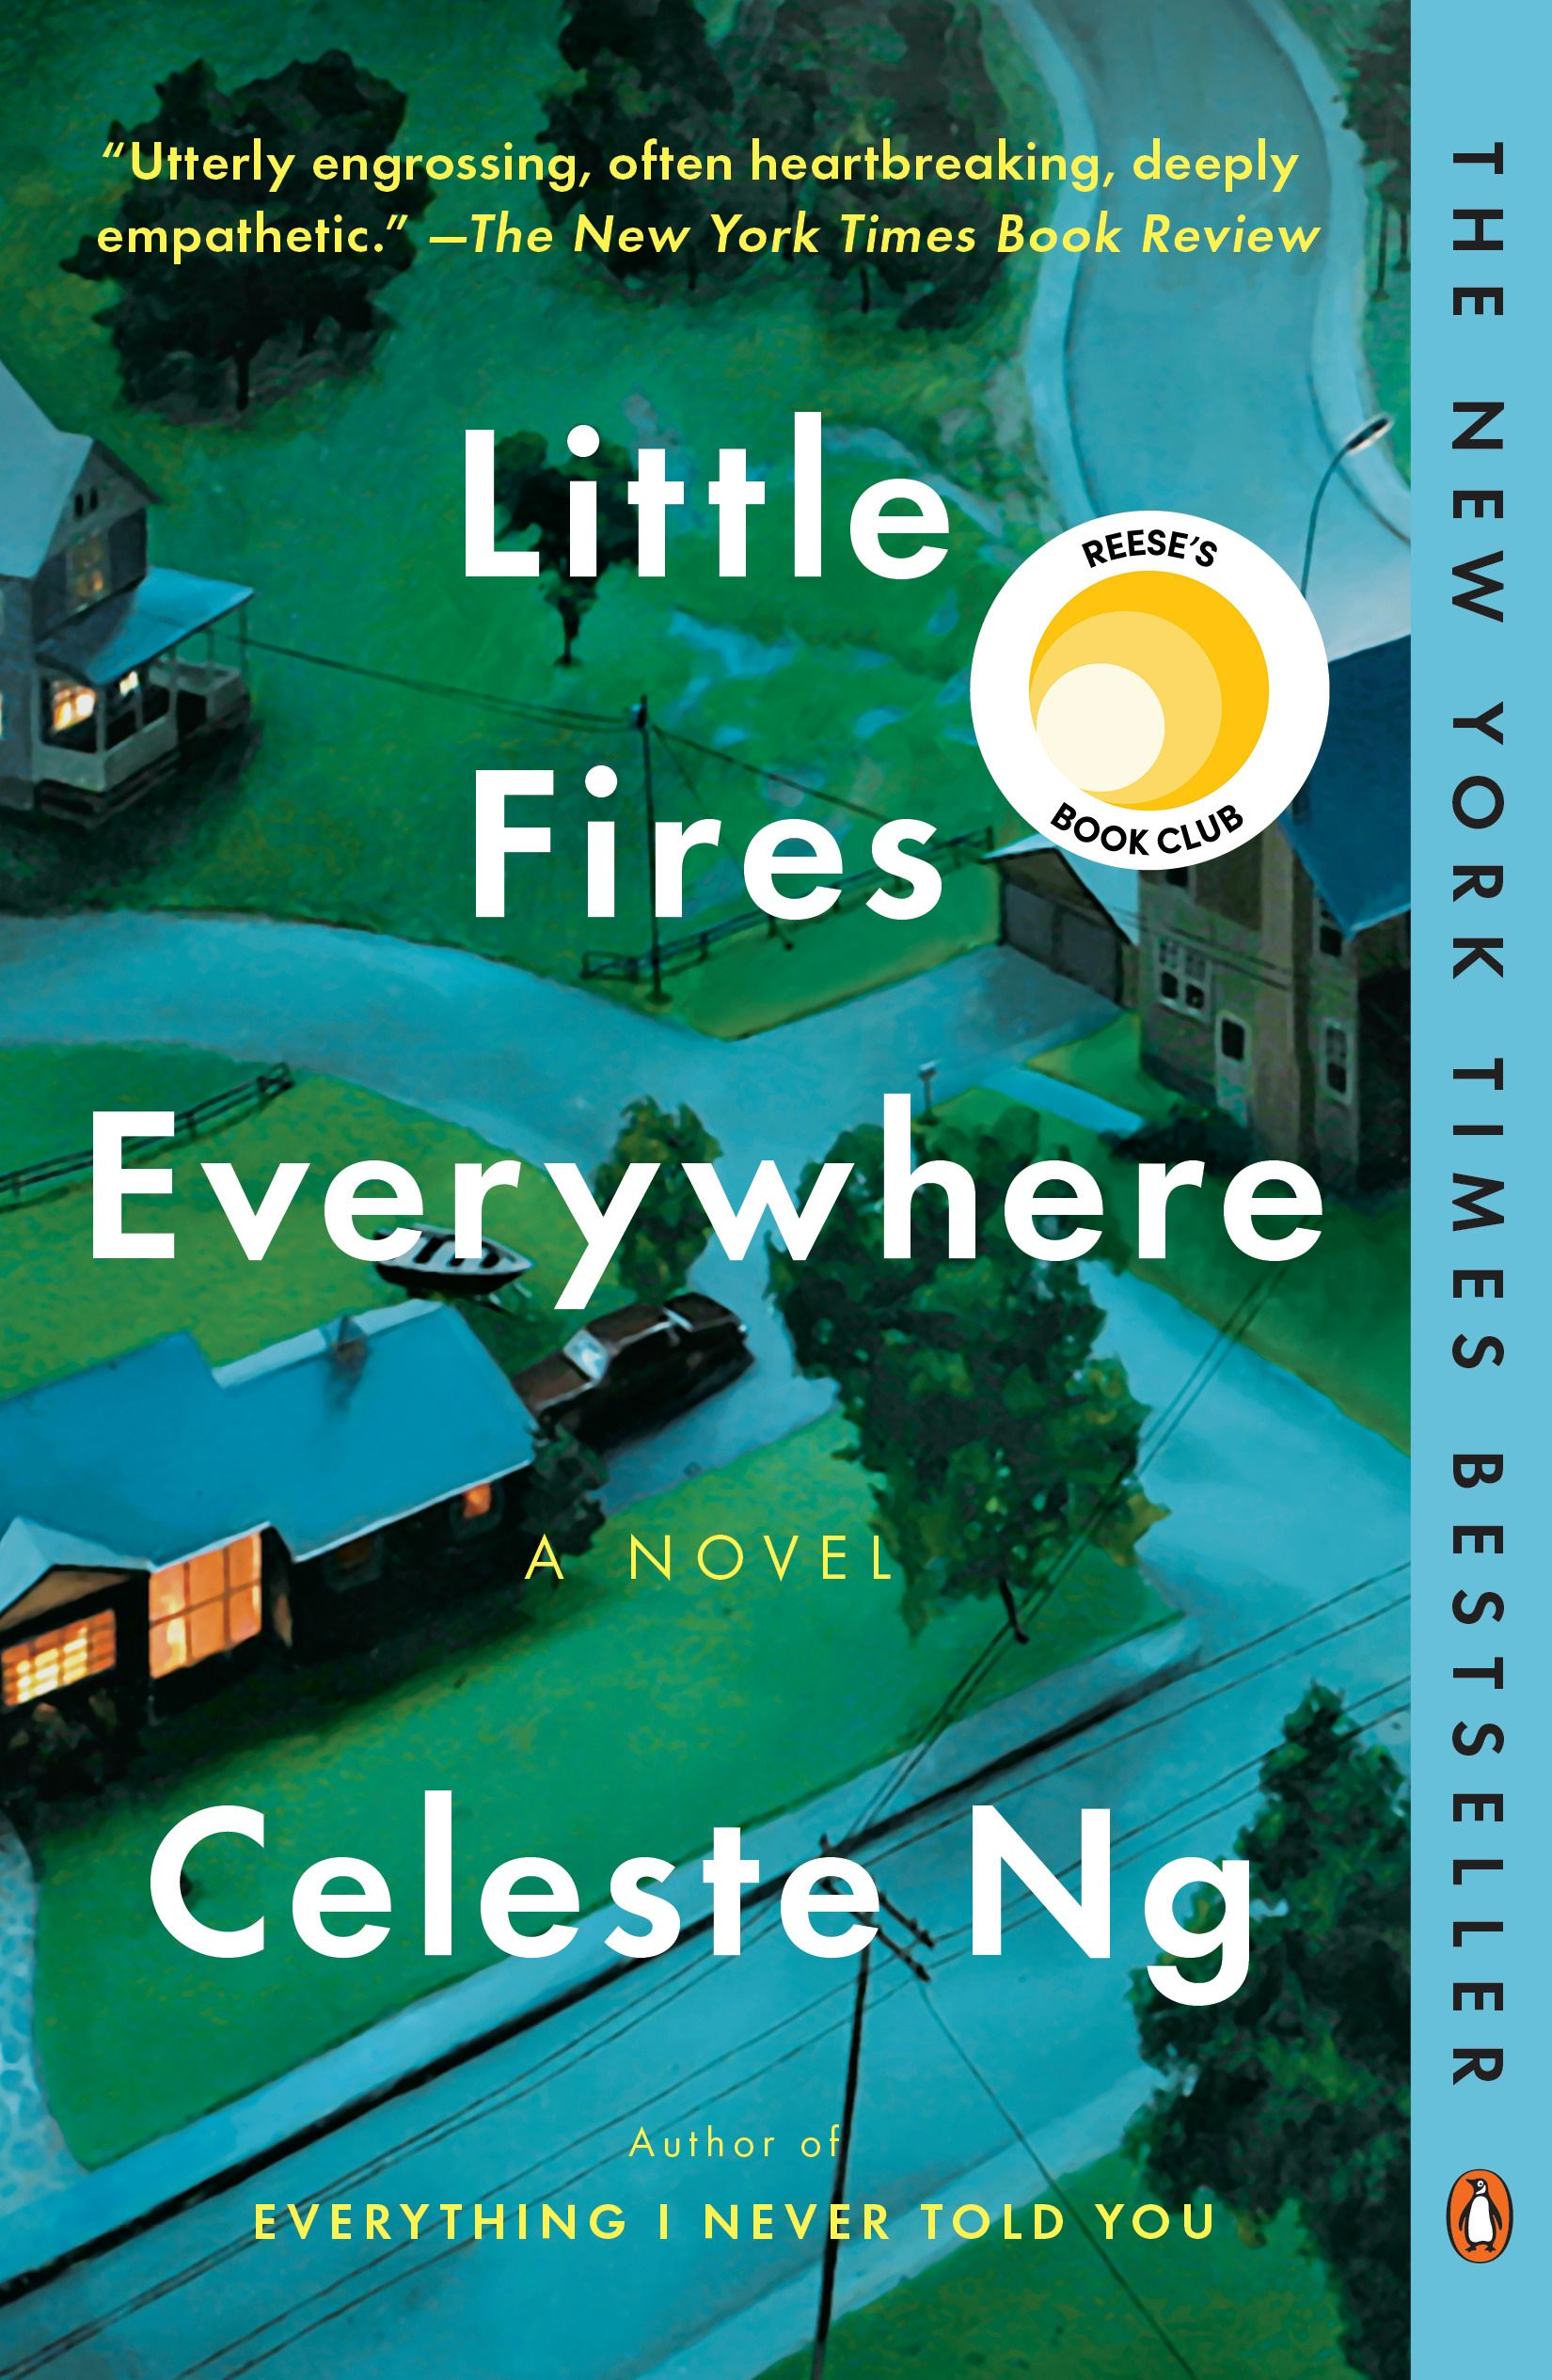 Little Fires Everywhere by Celeste Ng - Everyone in Shaker Heights was talking about it that summer: how Isabelle, the last of the Richardson children, had finally gone around the bend and burned the house down.